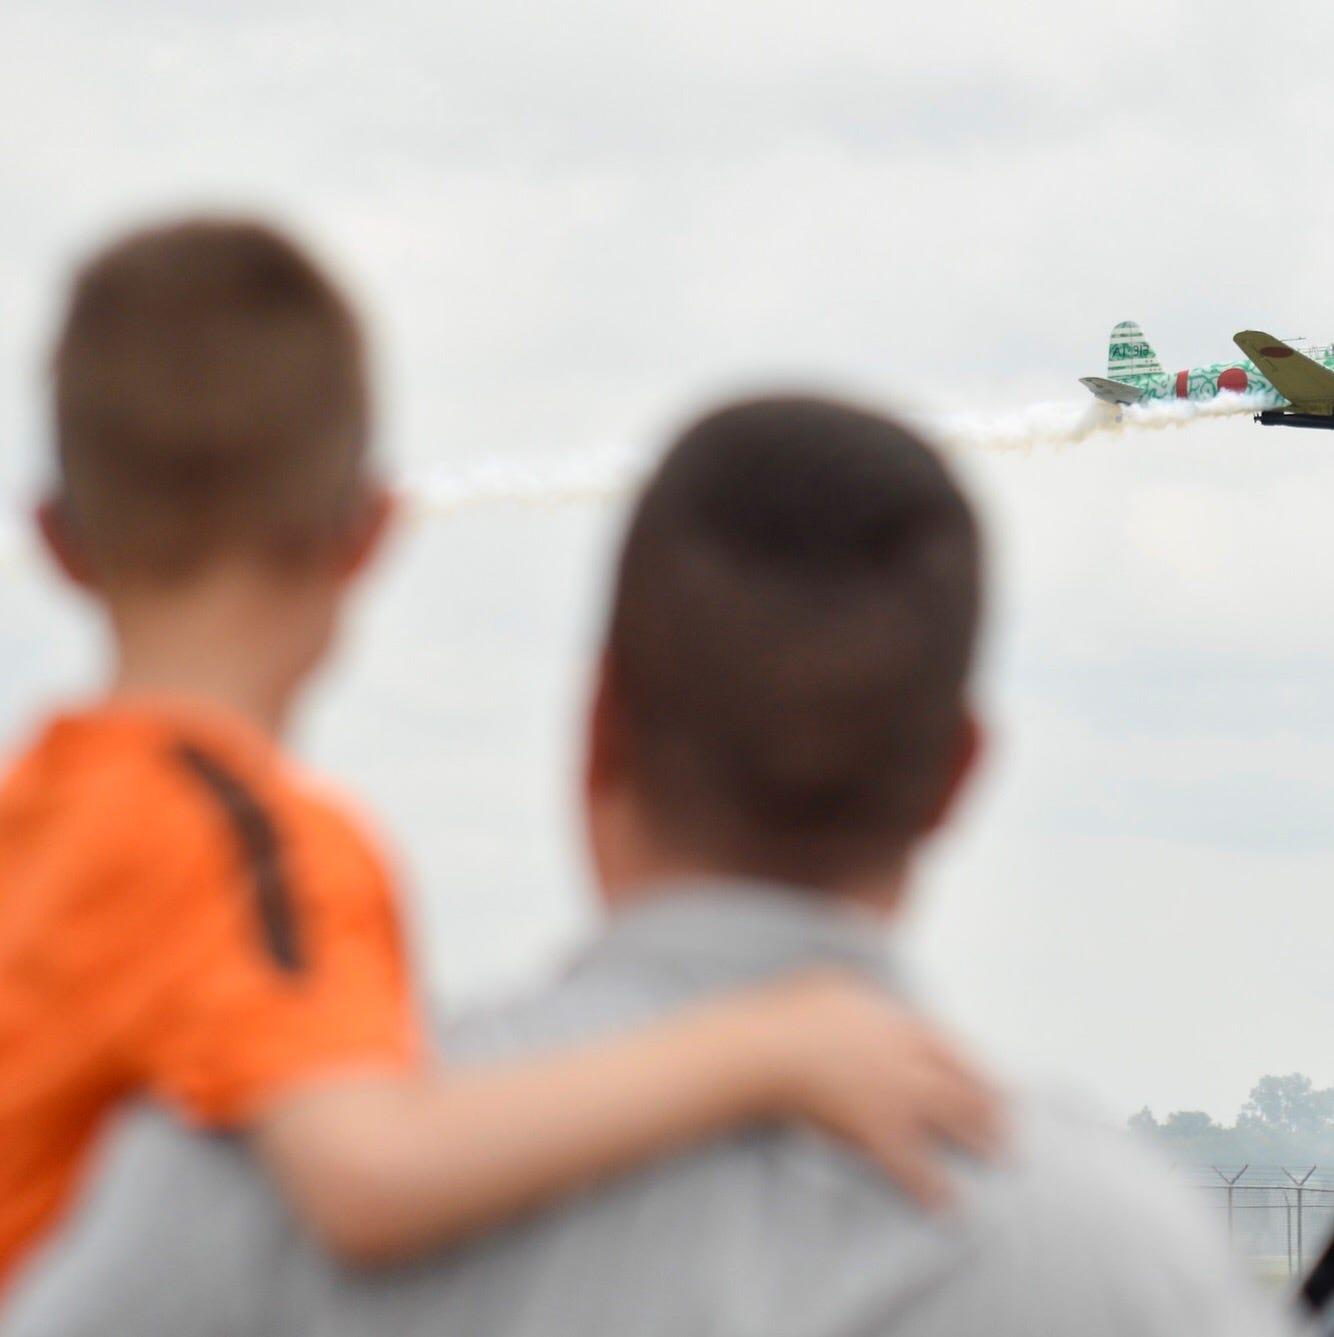 Barksdale Air Force Base hosts 2019 air show